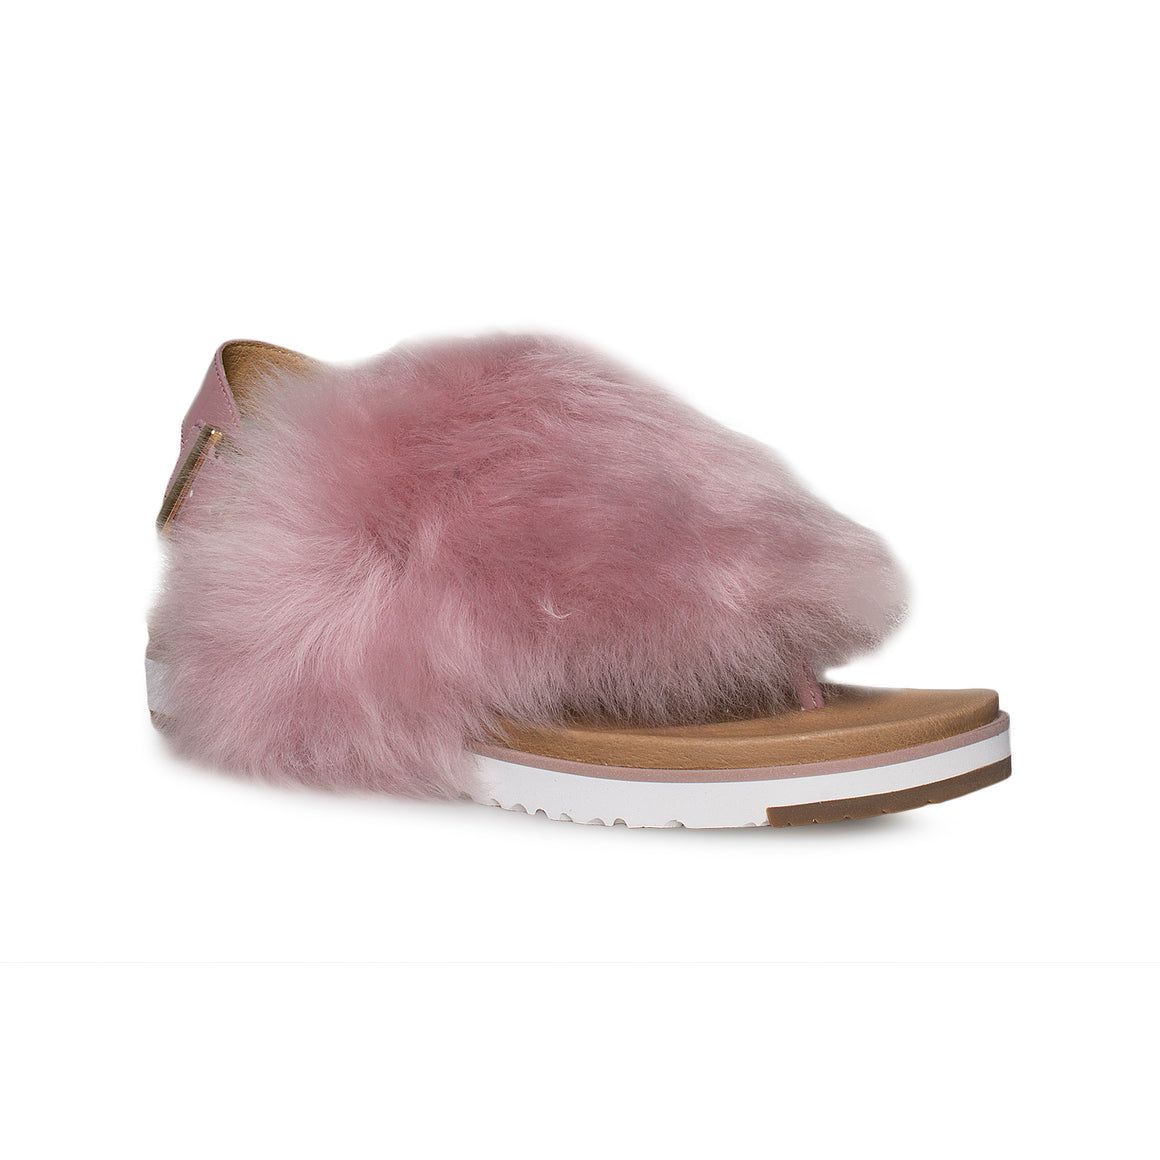 UGG Holly Pink Dawn Sandals - Women's